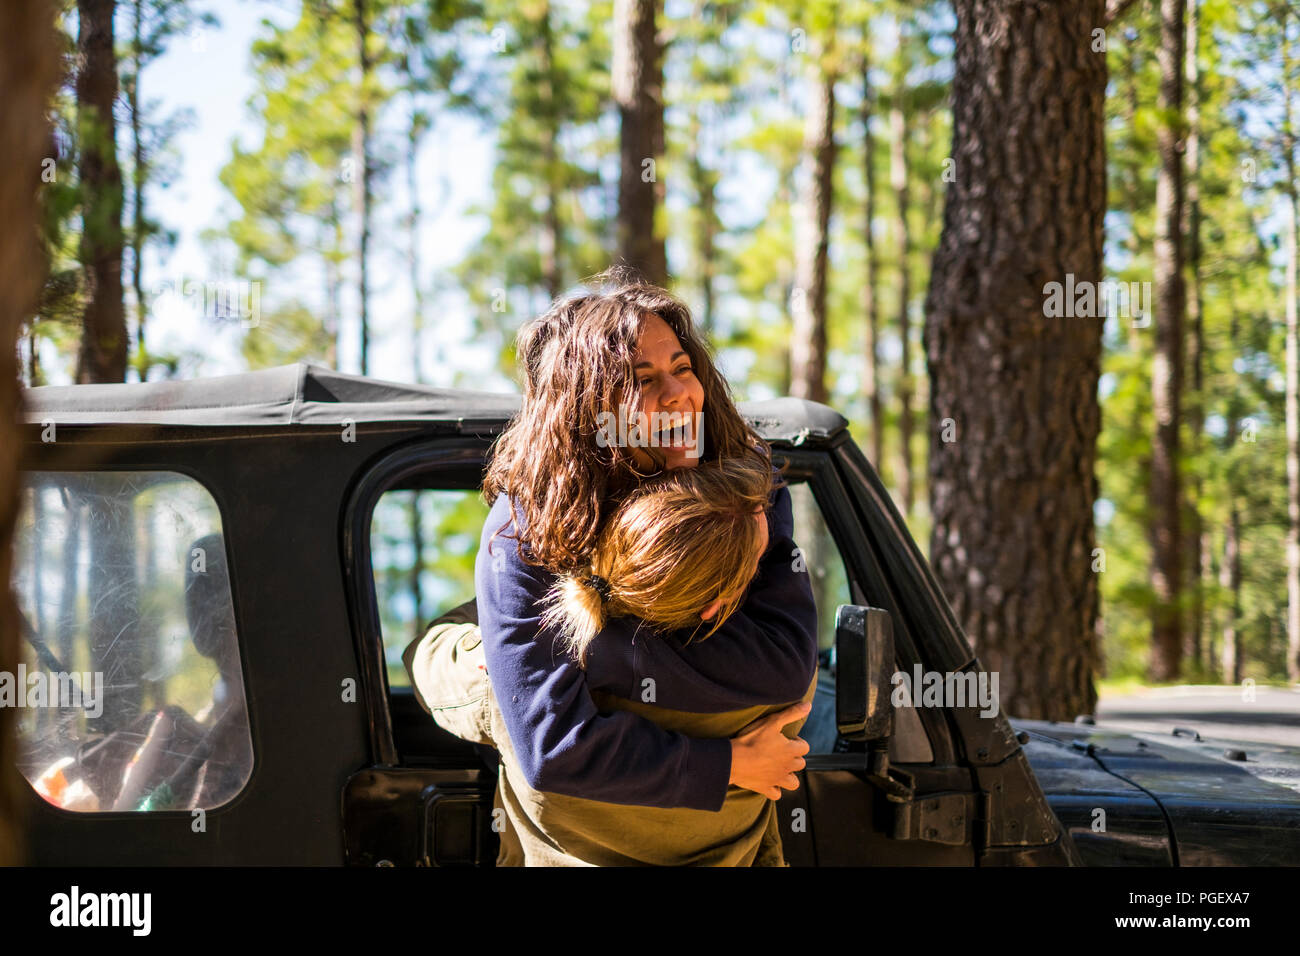 happiness during outdoor leisure activity for caucasian young couple in love and friendship. the woman hug the man laughing a lot and enjoying the lif - Stock Image